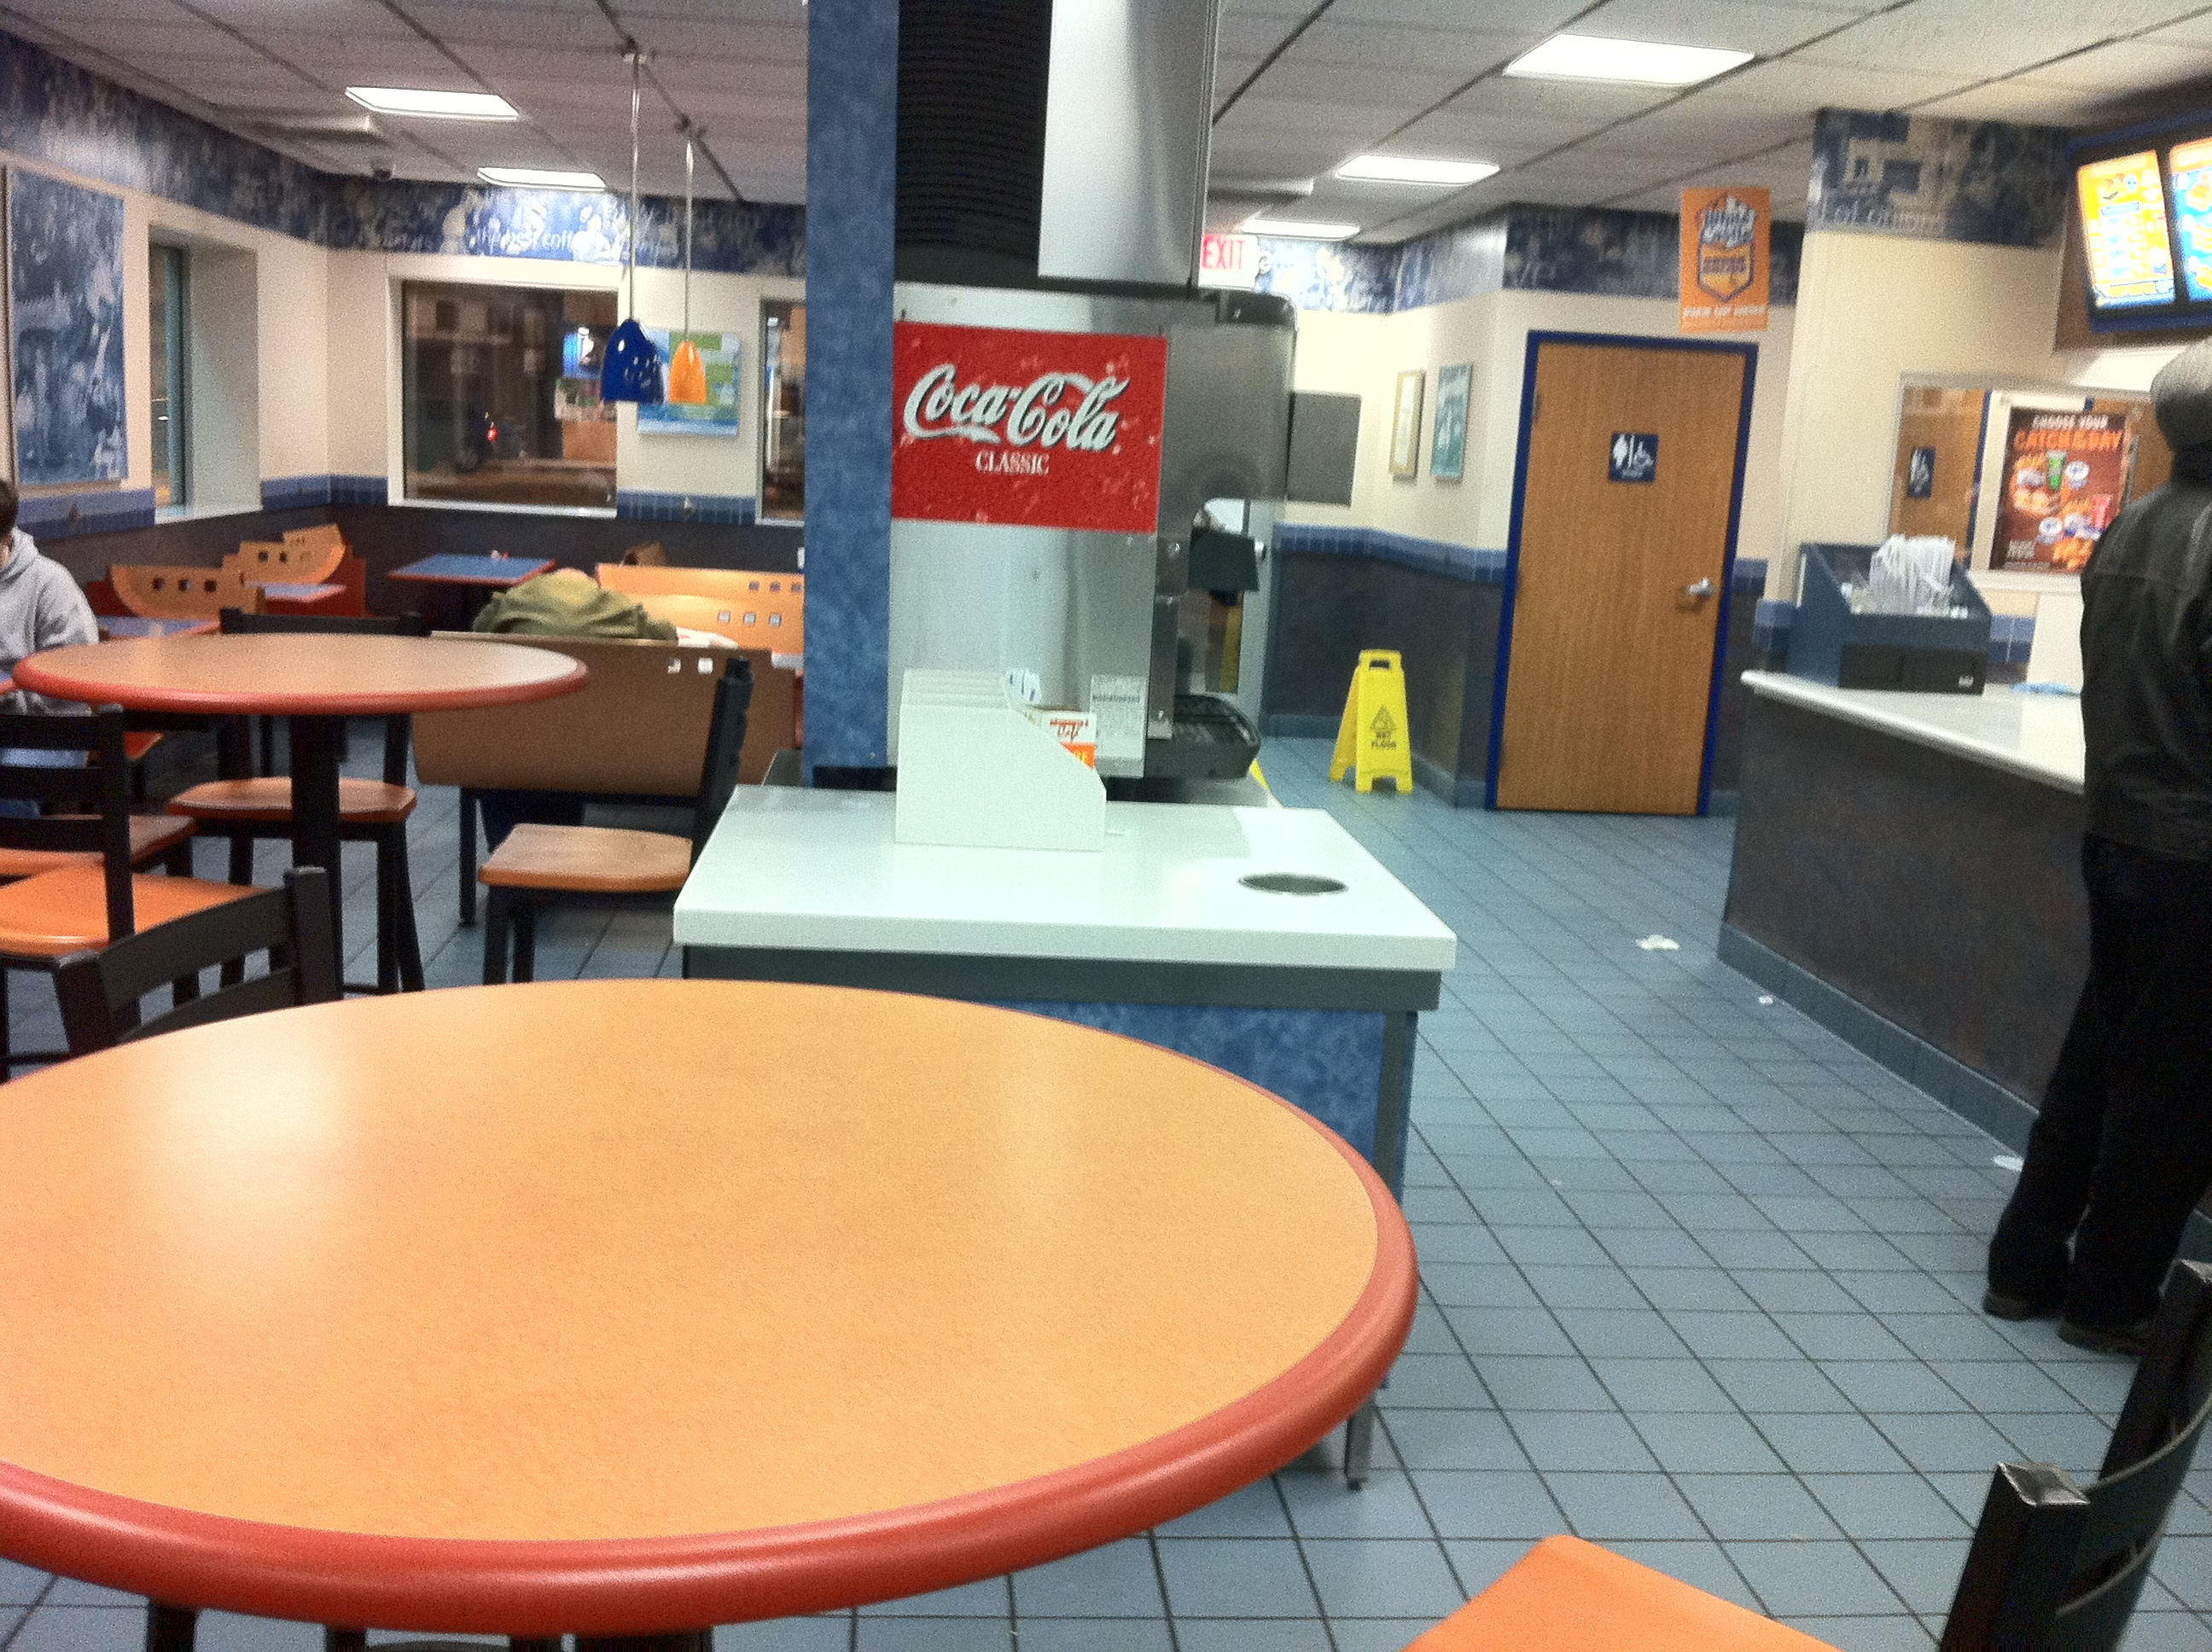 Magnificent Here Castle Texas Liberal Castle Law Texas Castle Tyler Texas nice food White Castle Texas